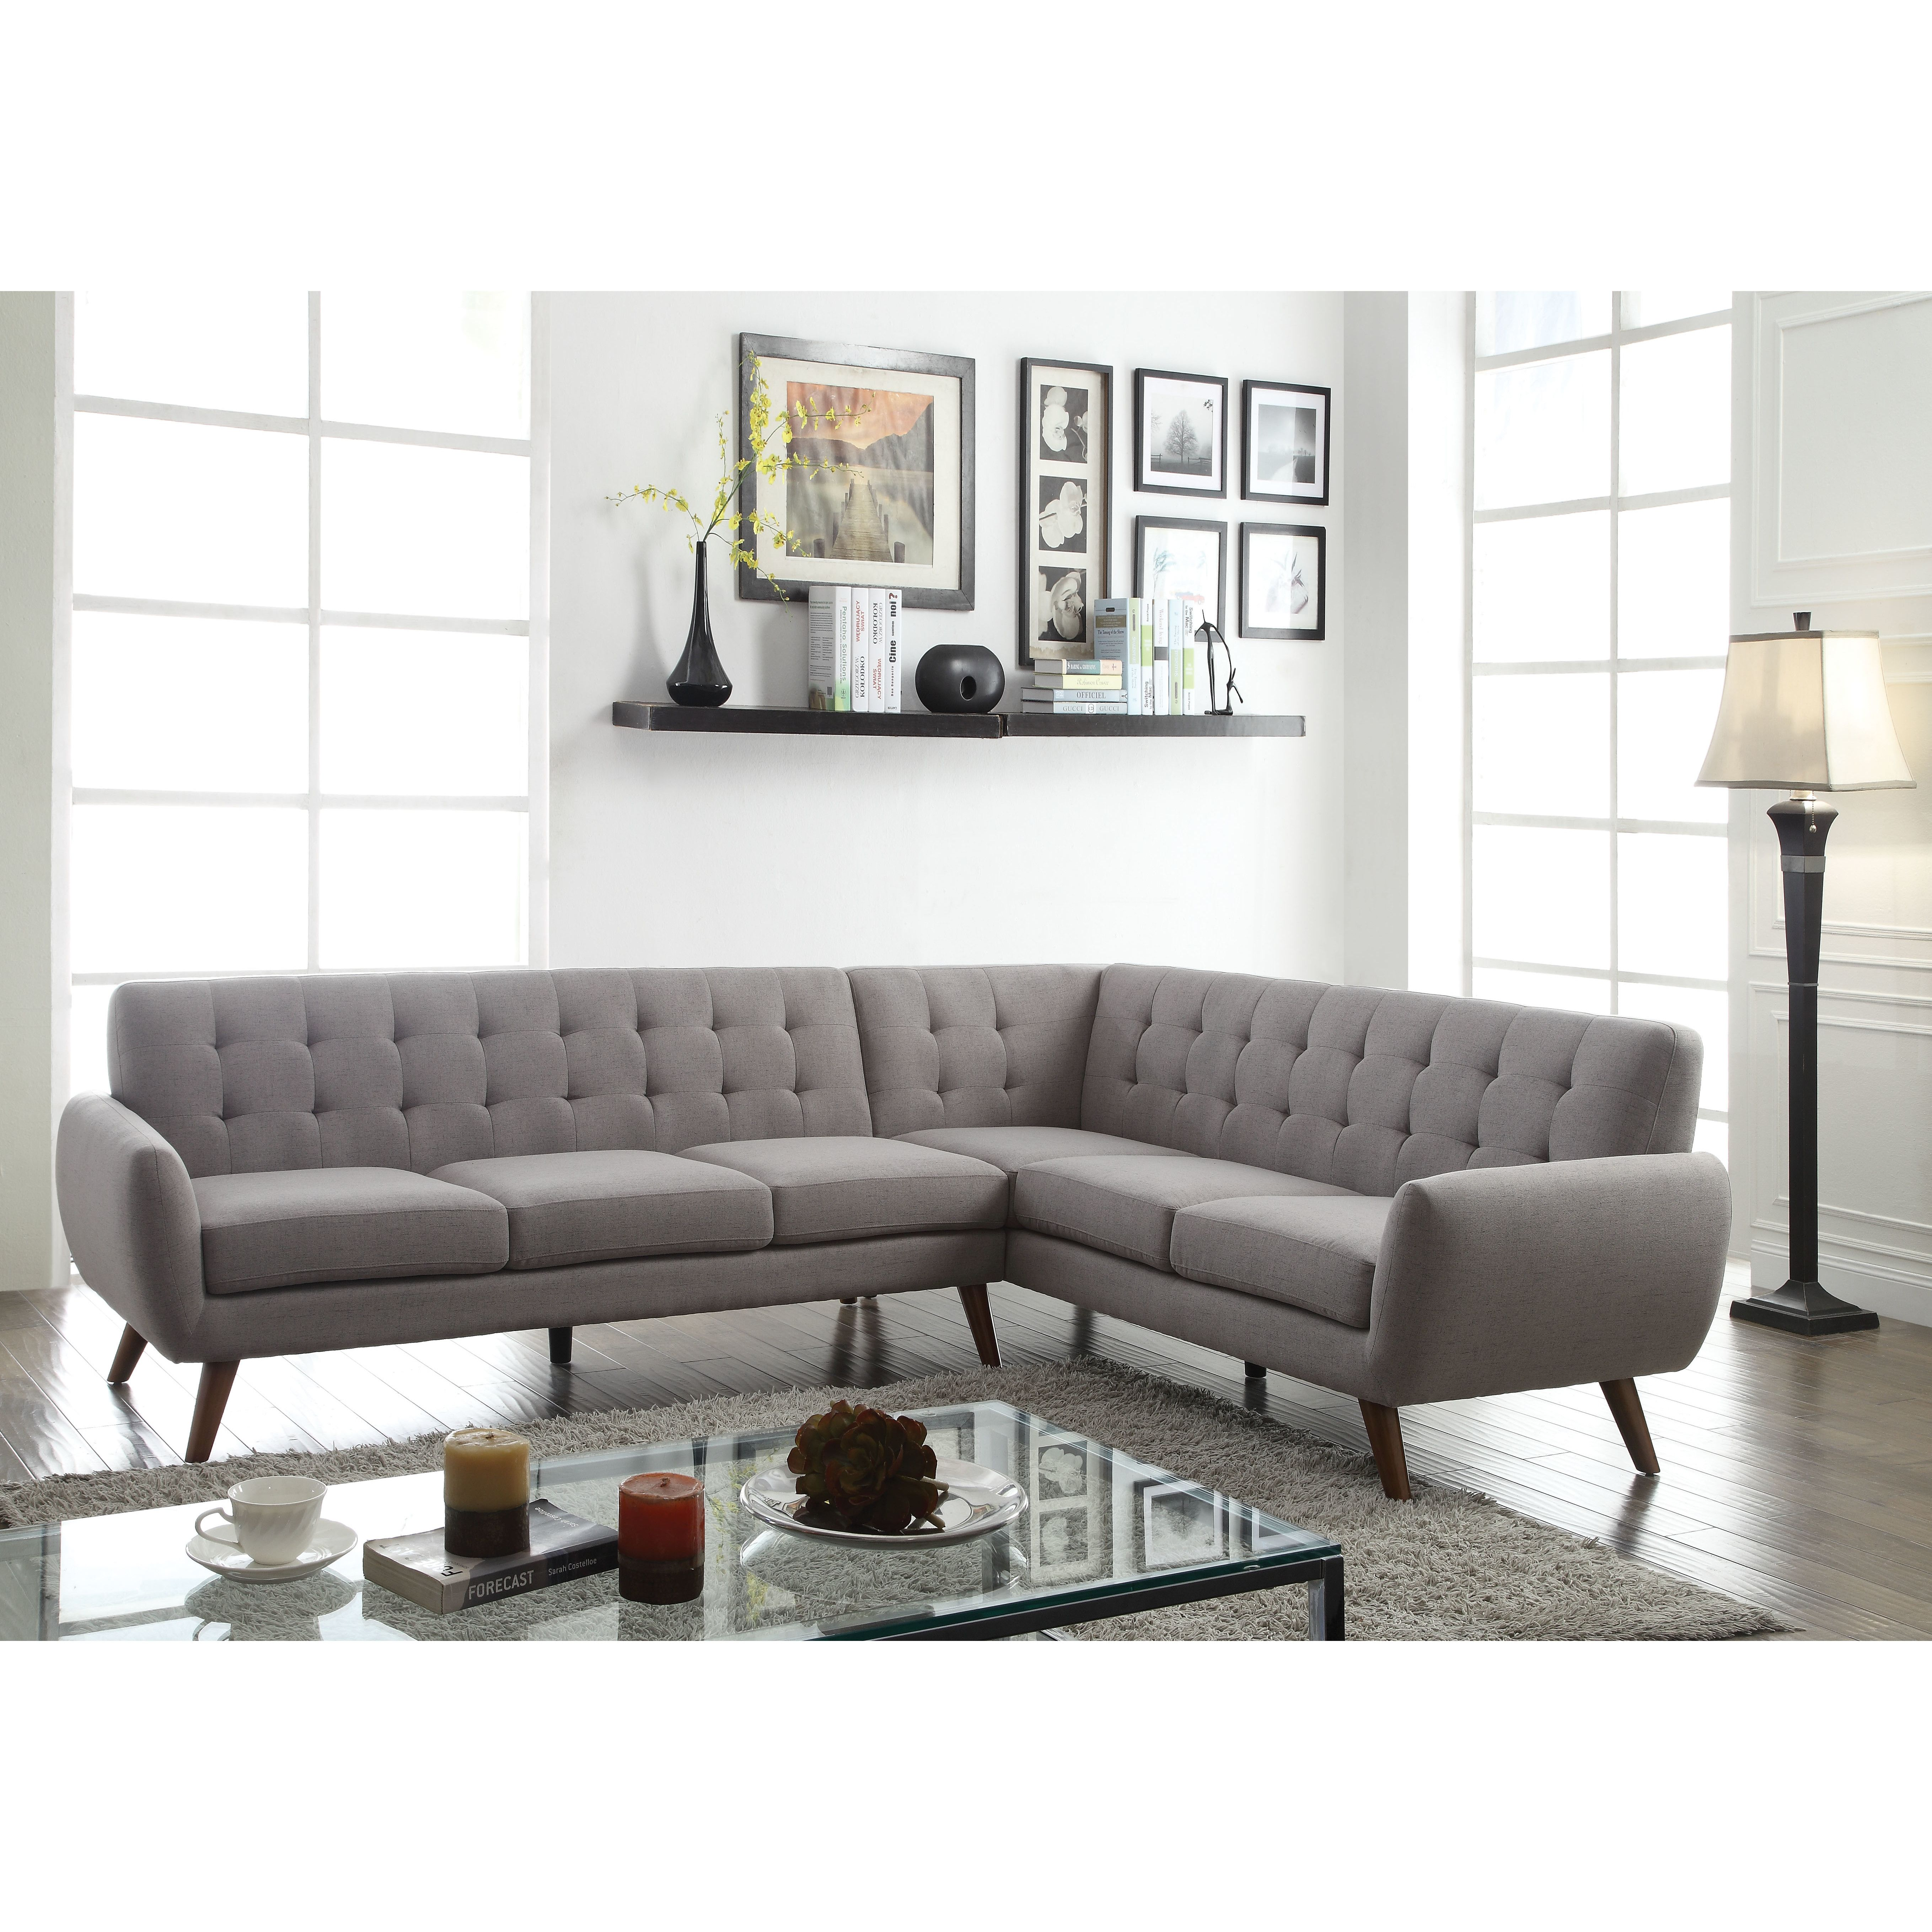 Acme Furniture Essick Sectional Right Facing Love Amp Wedge Sectional Sofa Sectional Sofa Couch